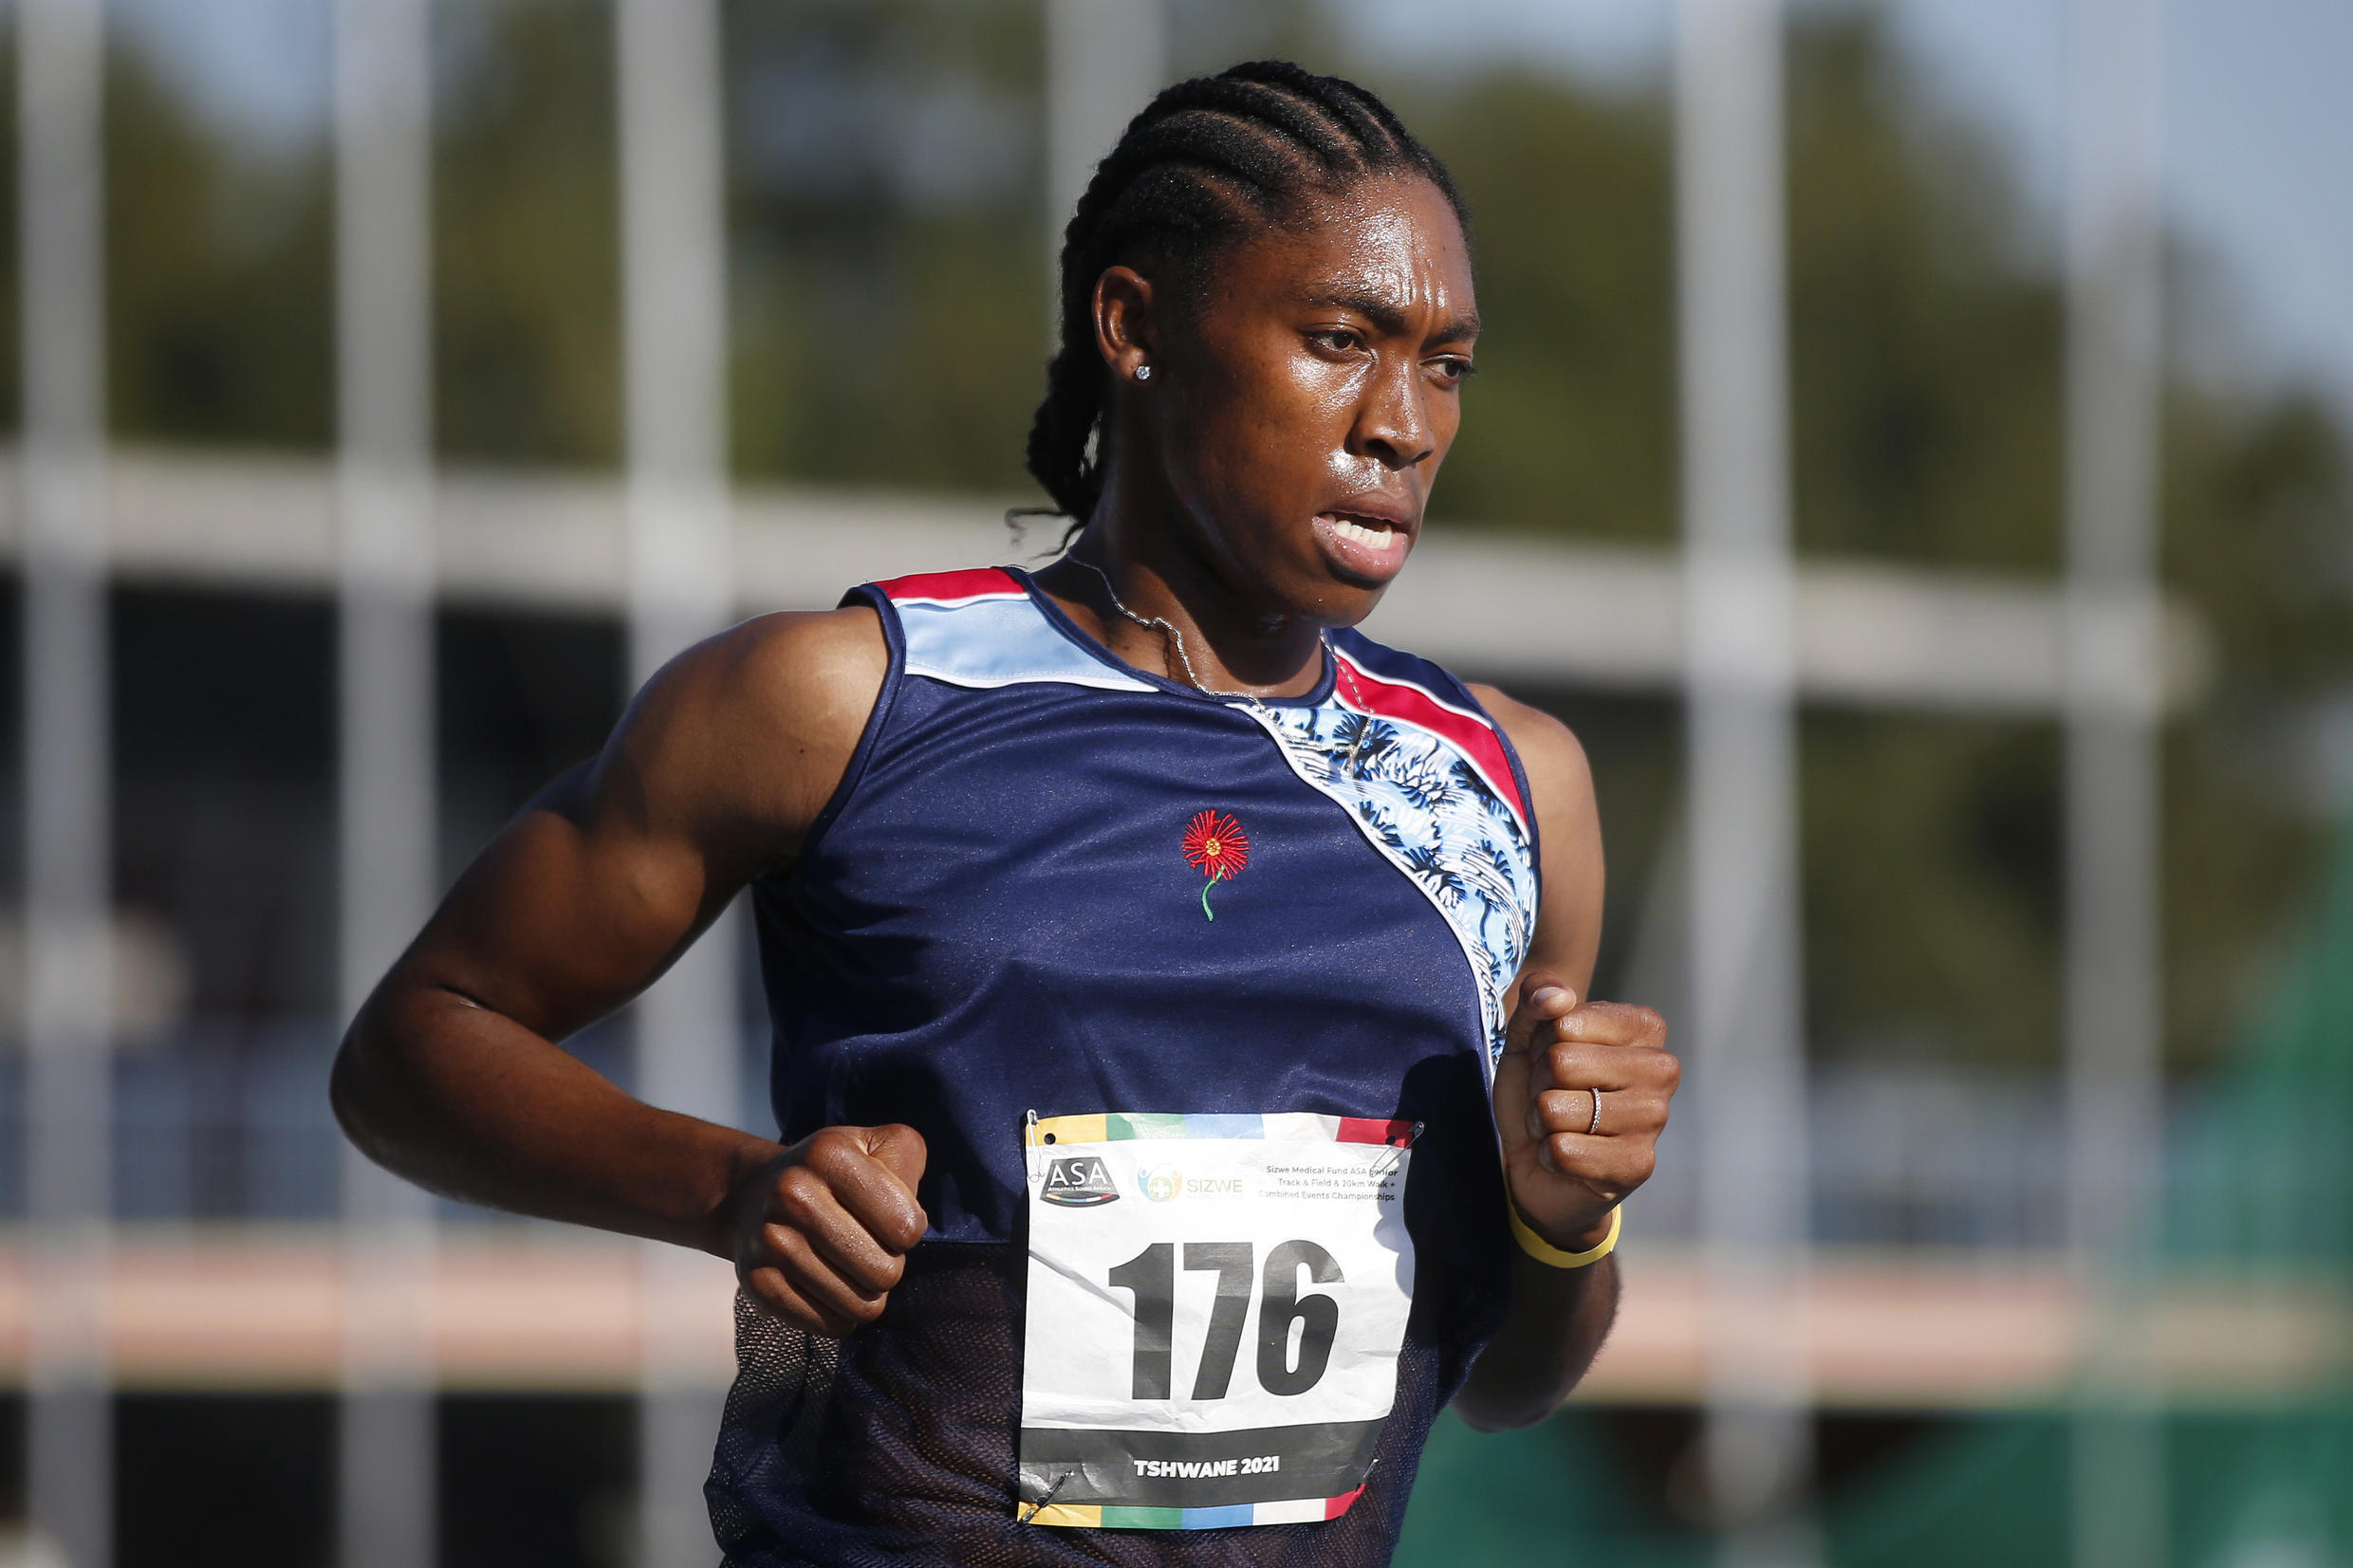 Double Olympics 800 metres champion Caster Semenya on her way to winning the South African championships 5,000m title in Pretoria